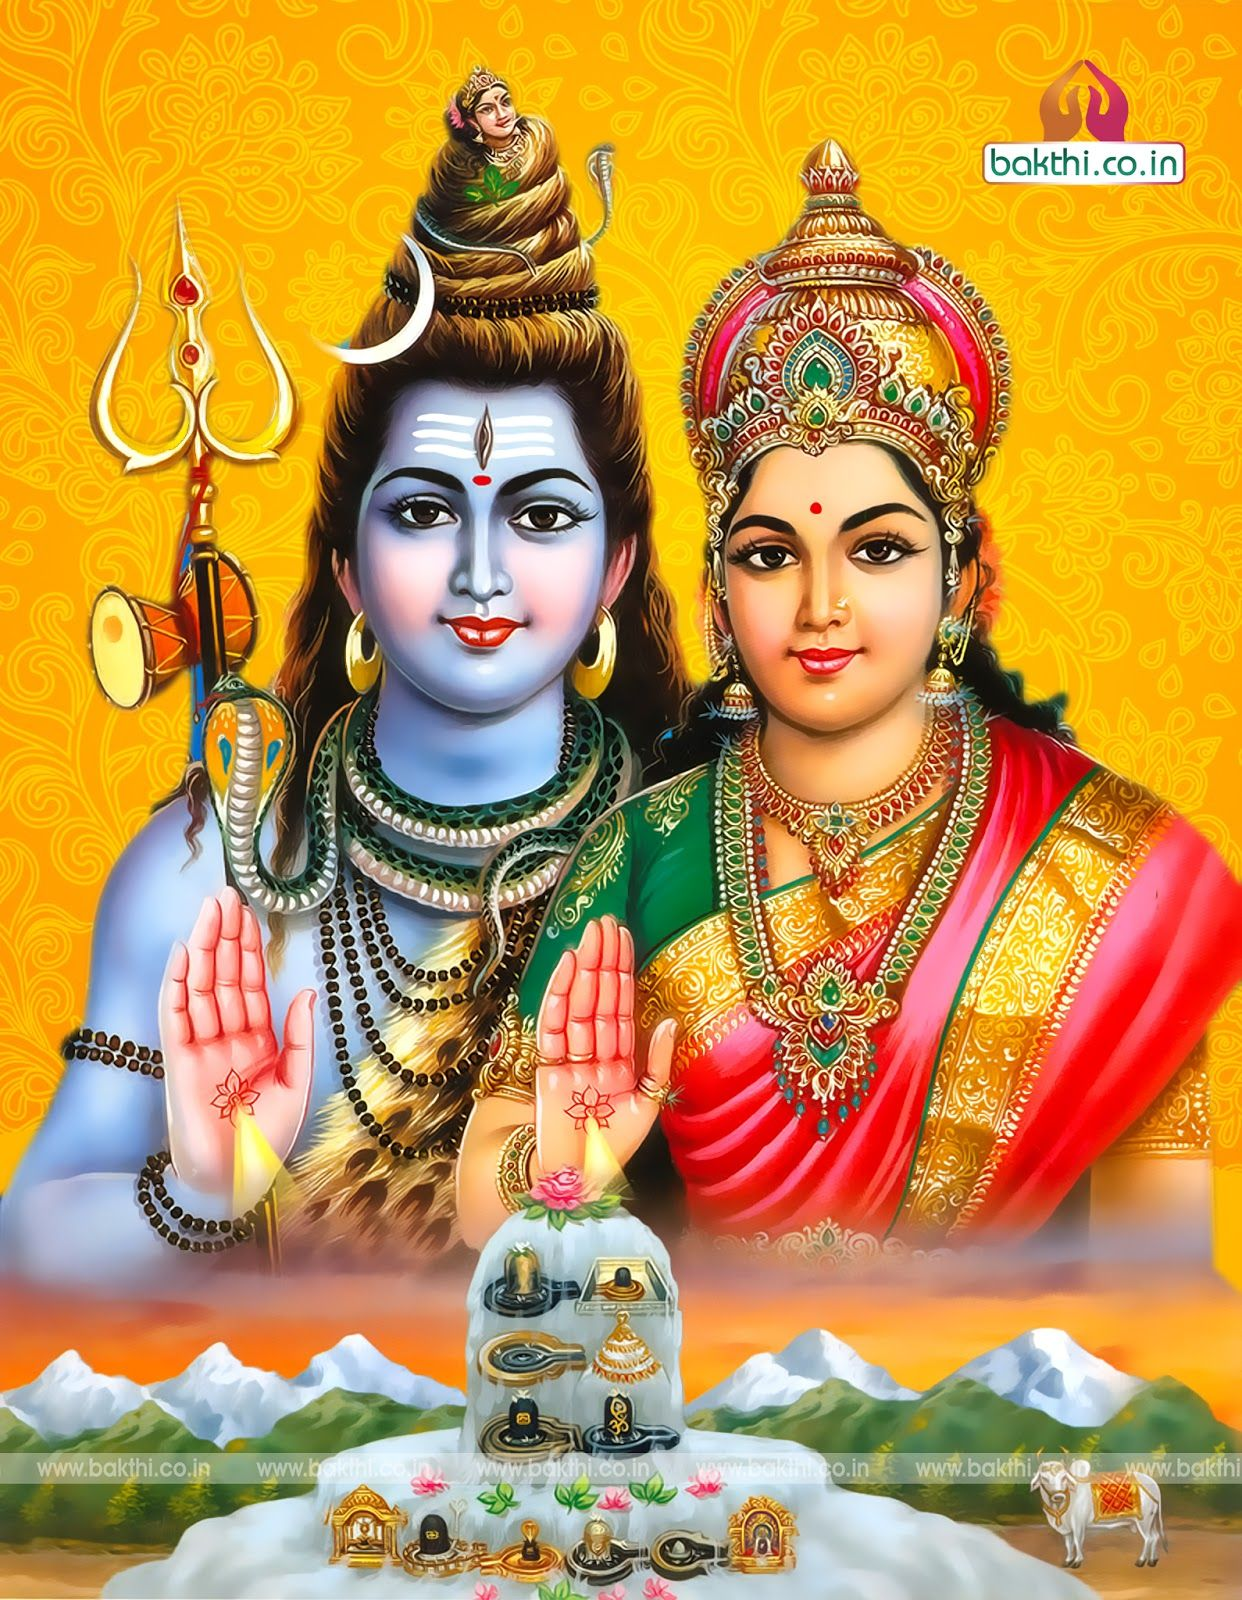 Pin By Pavani Thota On God Lord Shiva Shiva Shiva Parvati Images